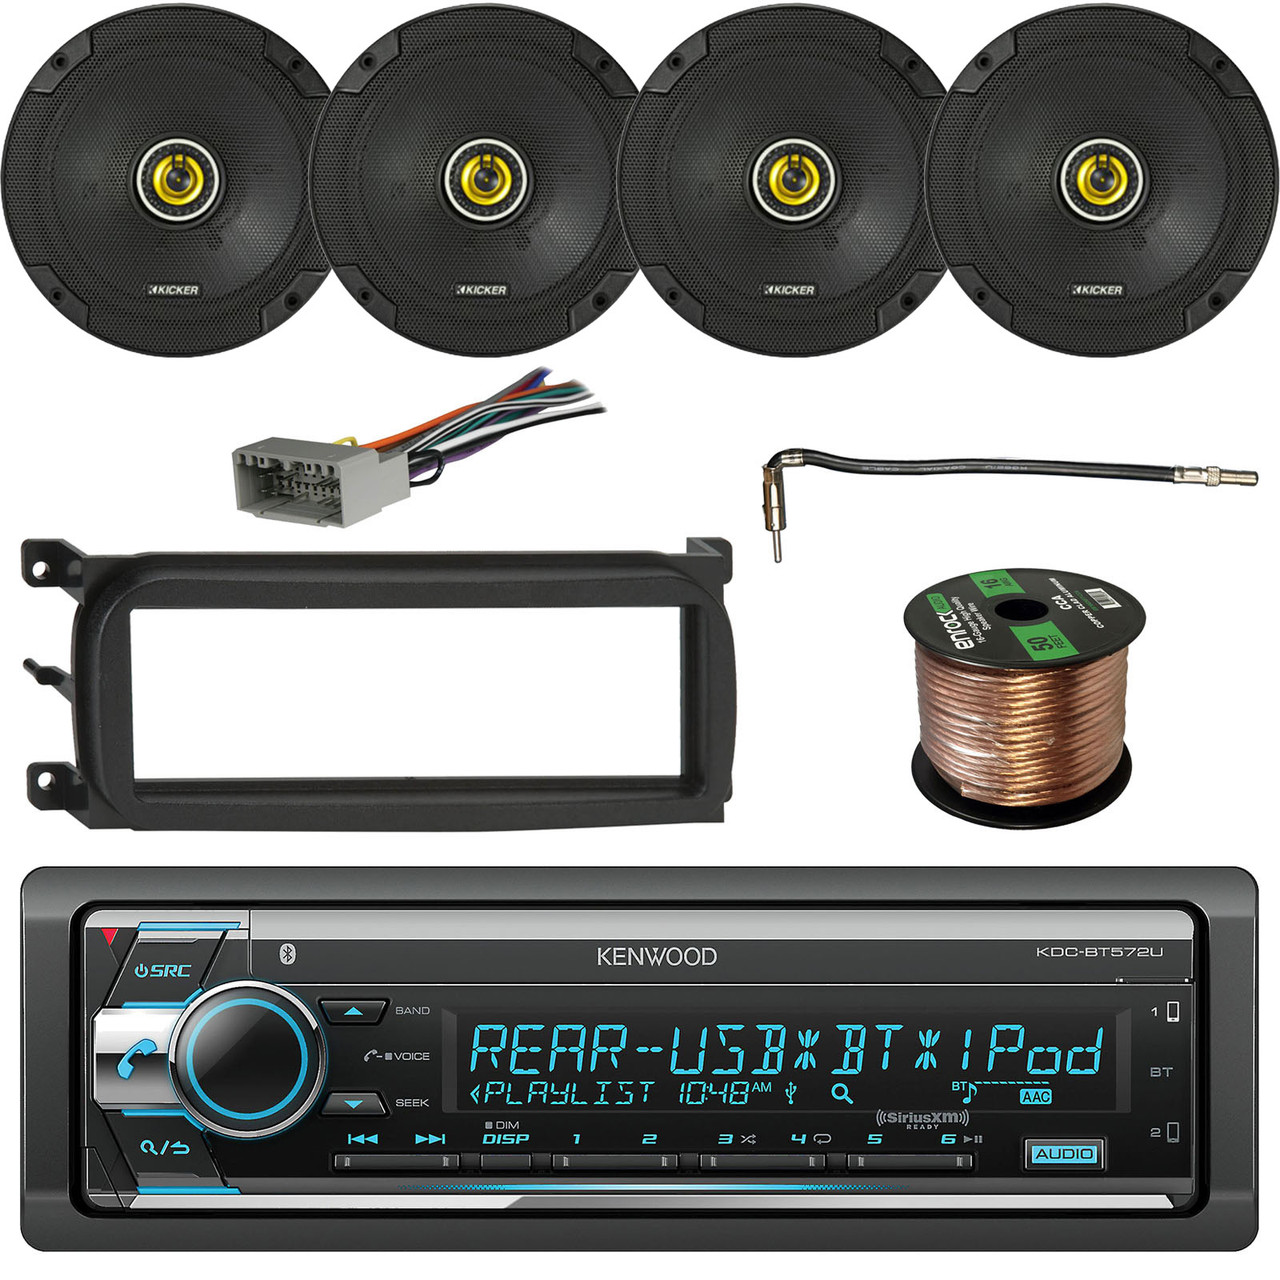 kenwood stereo receiver bluetooth w kicker 600w speakers 2 pairs enrock single din dash kit for chry dodge jeep metra chrysler antenna adapter cable  [ 1280 x 1280 Pixel ]